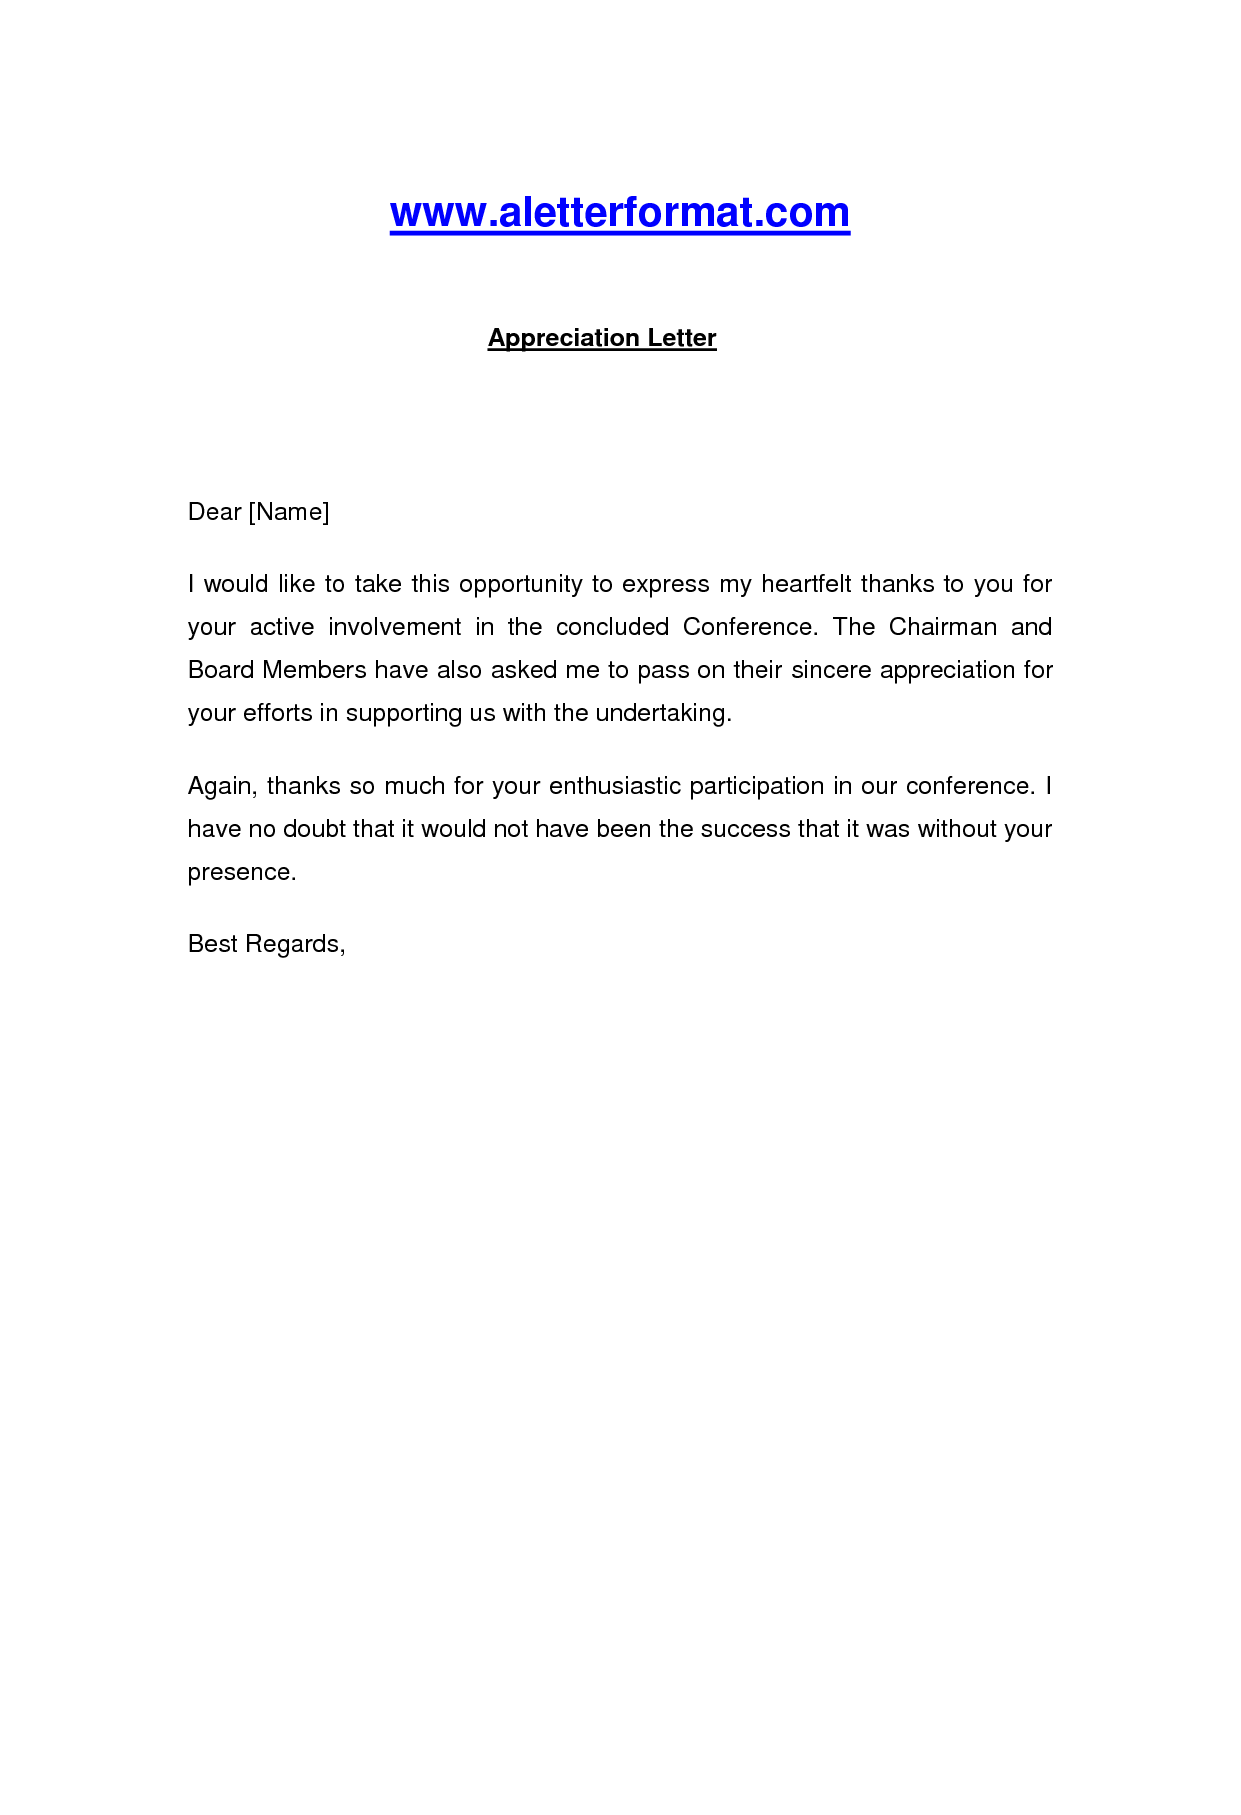 Appreciation letter appreciation letter for active involvement appreciation letter appreciation letter for active involvement altavistaventures Images